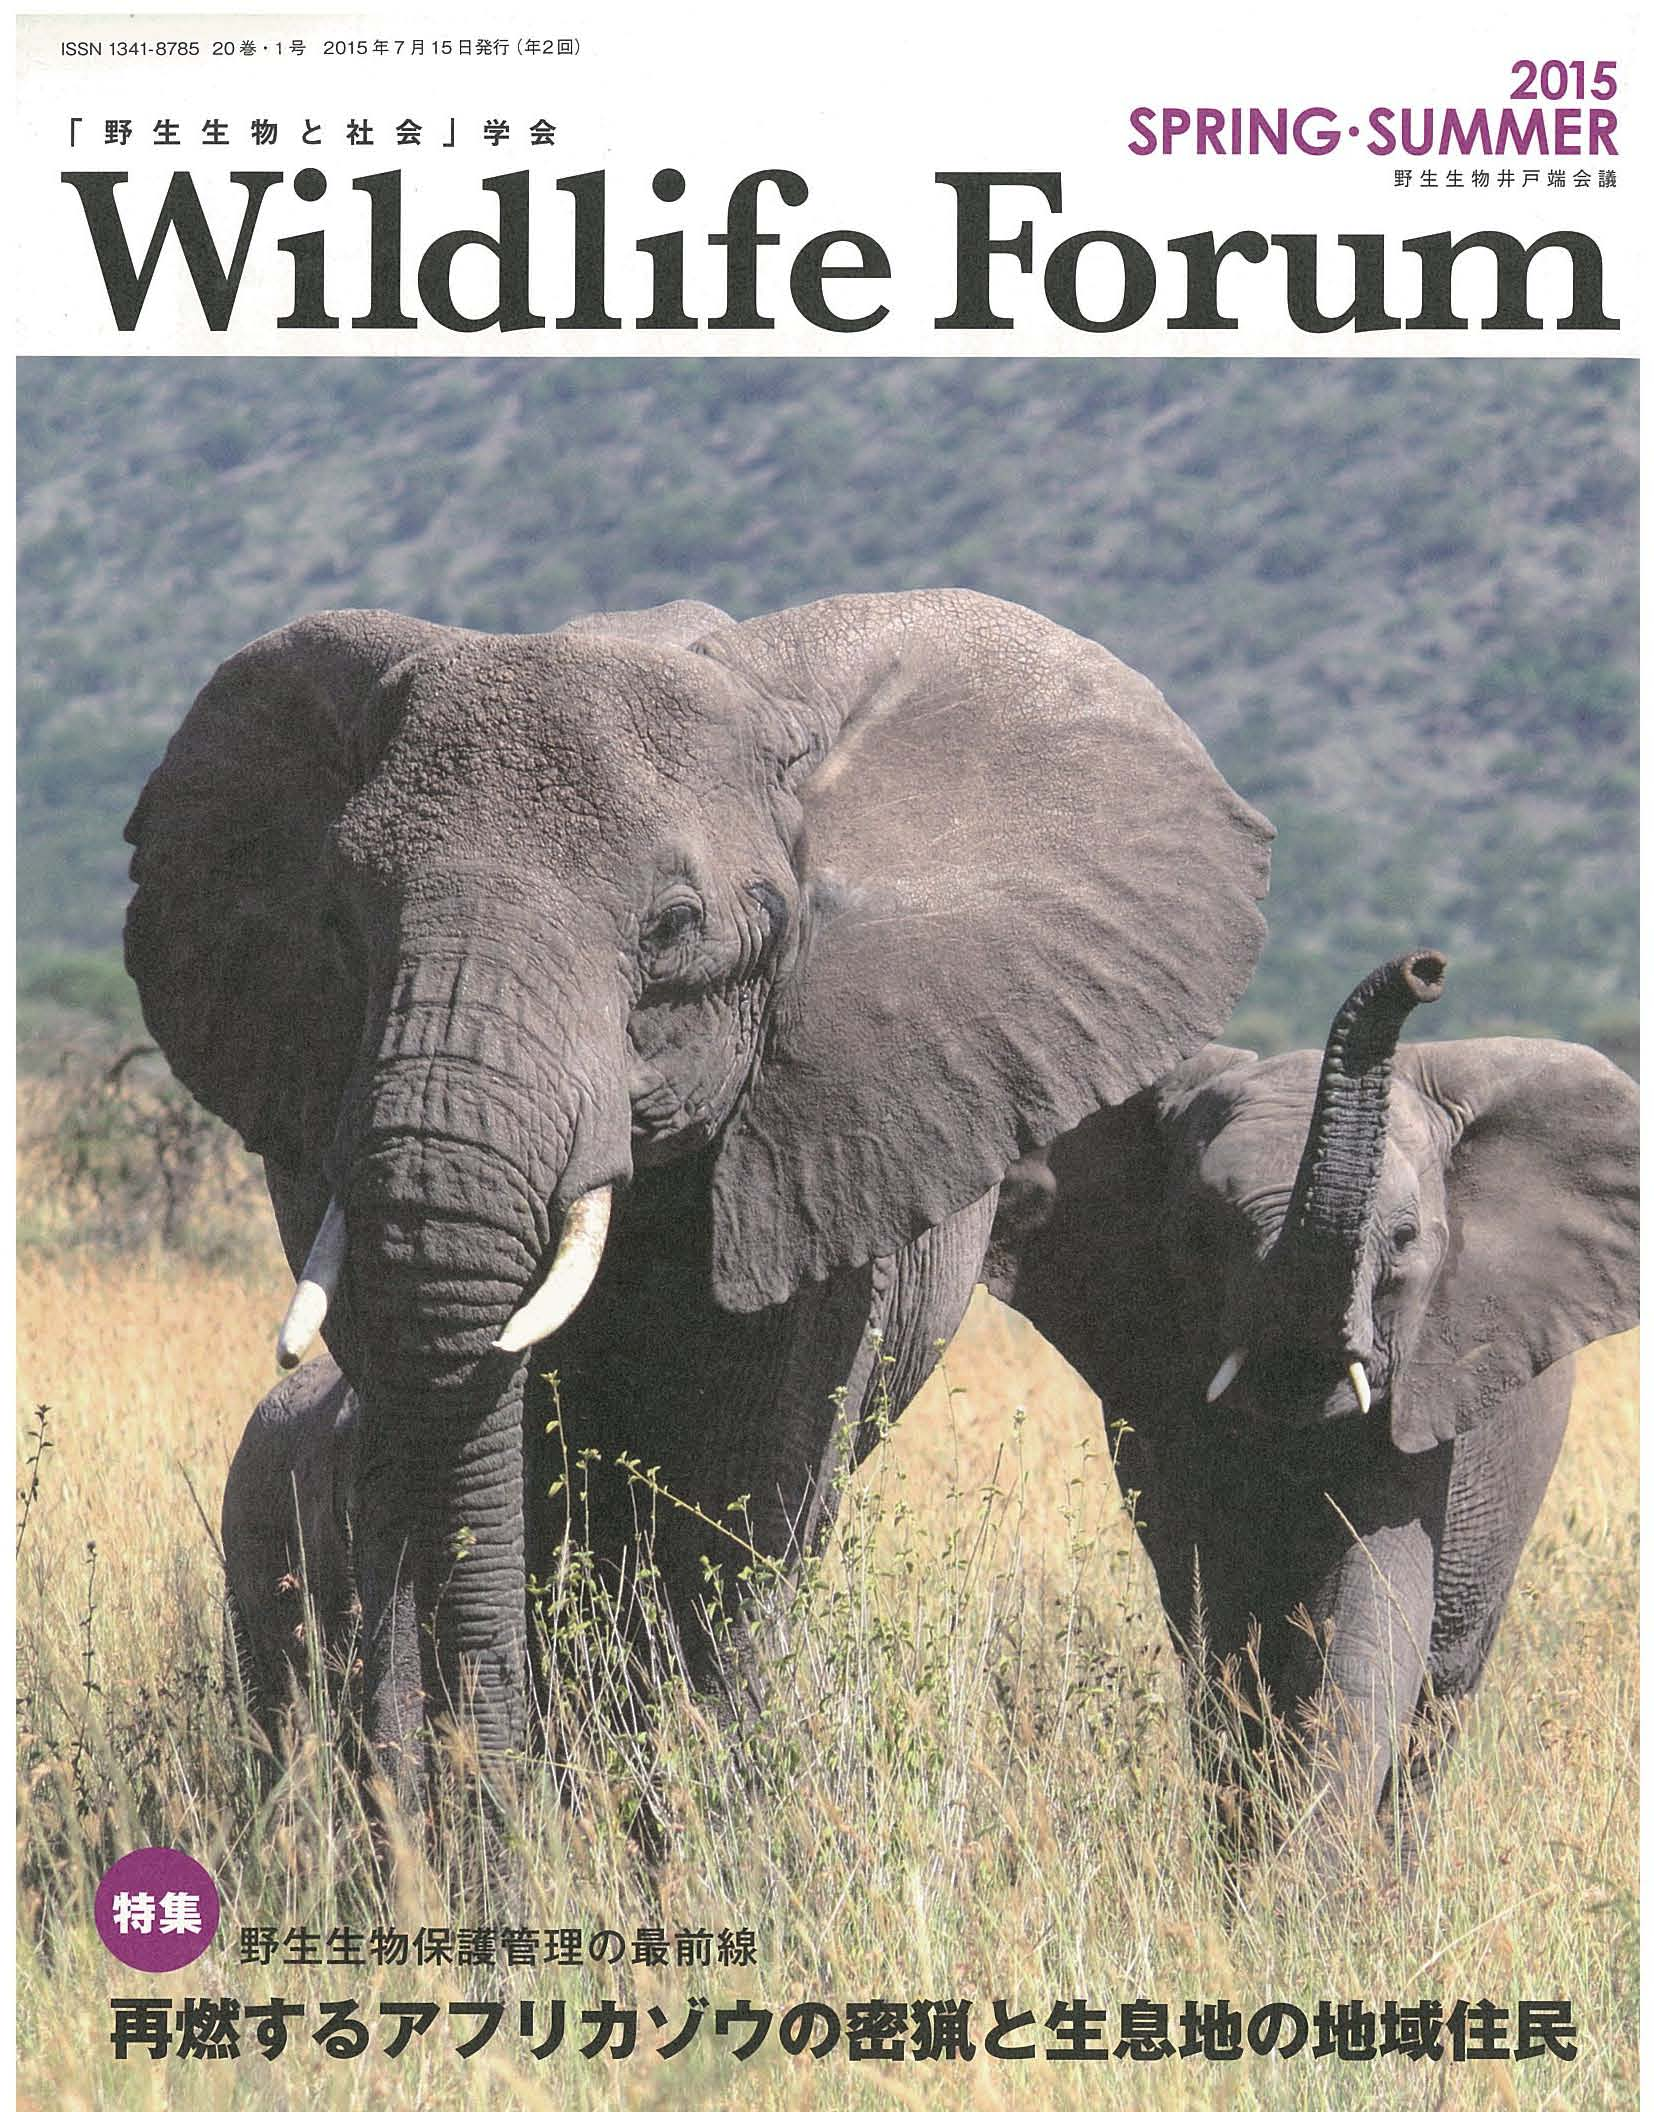 Wildlife FORUM Vol.20 No.1